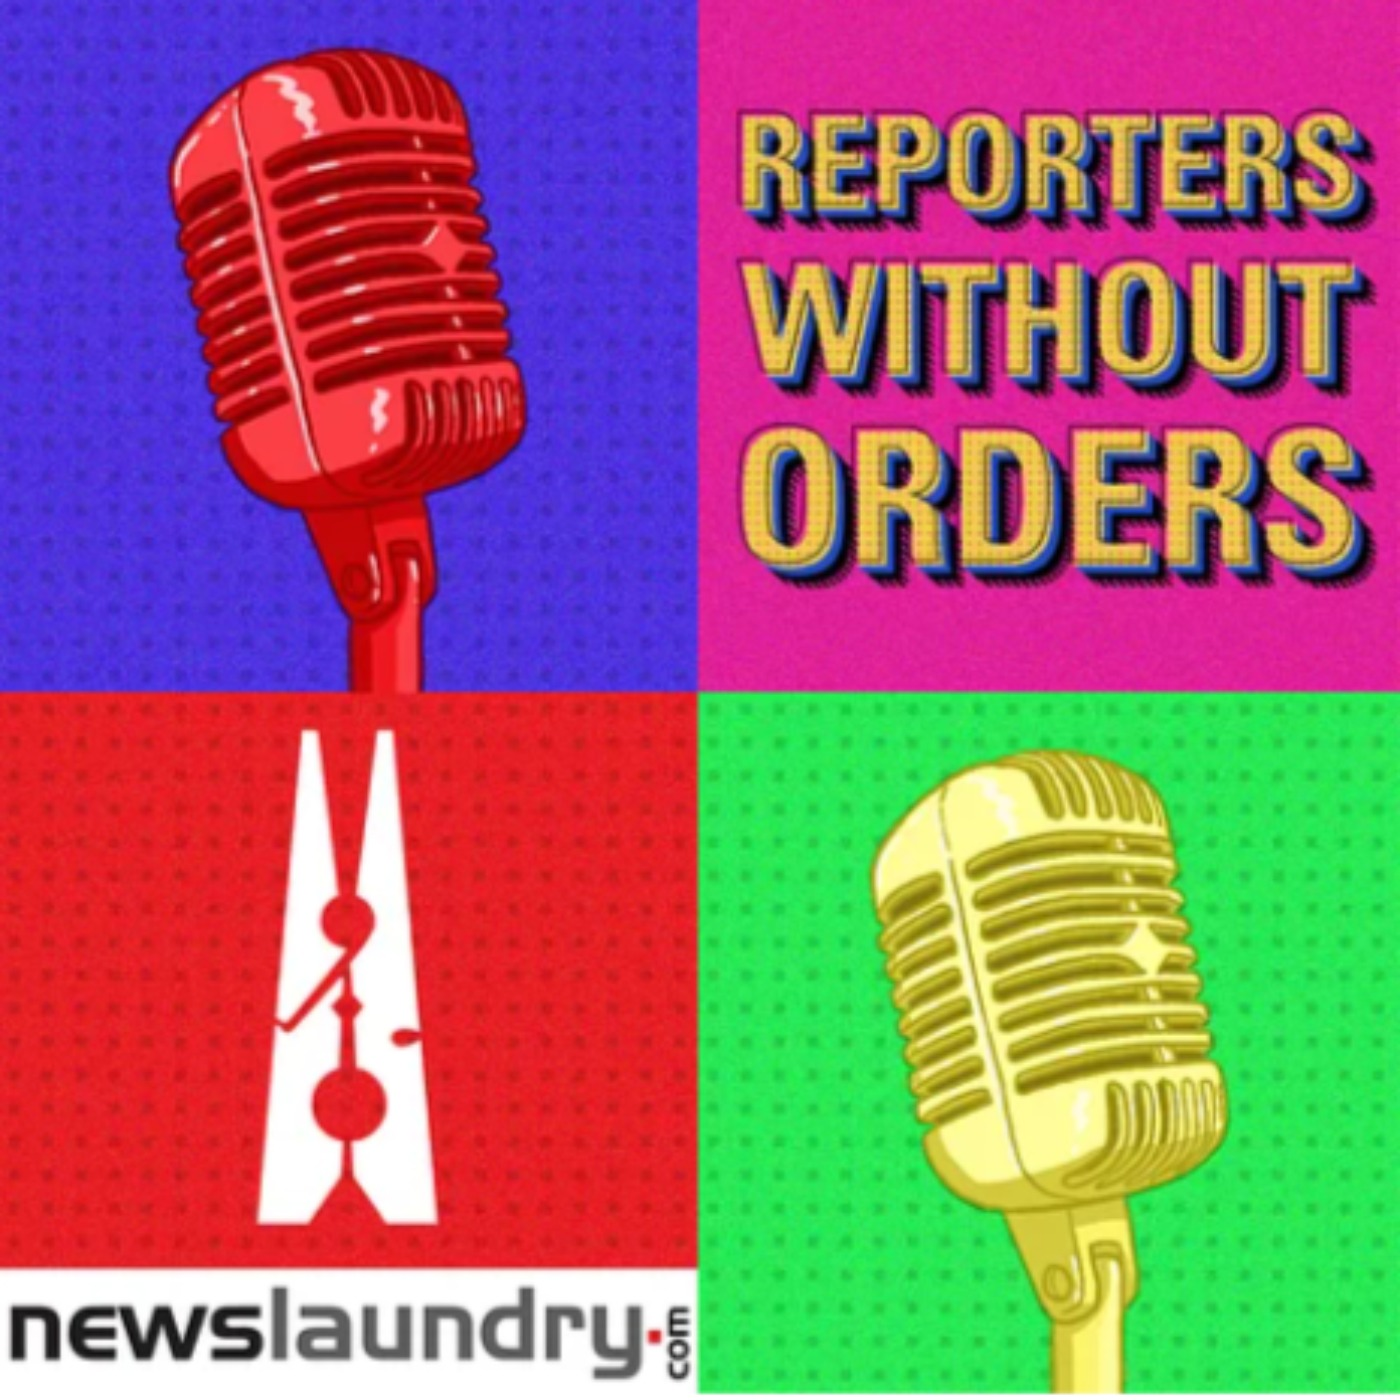 Reporters Without Orders Ep 157: Hindu IT Cell and Hathras murder case